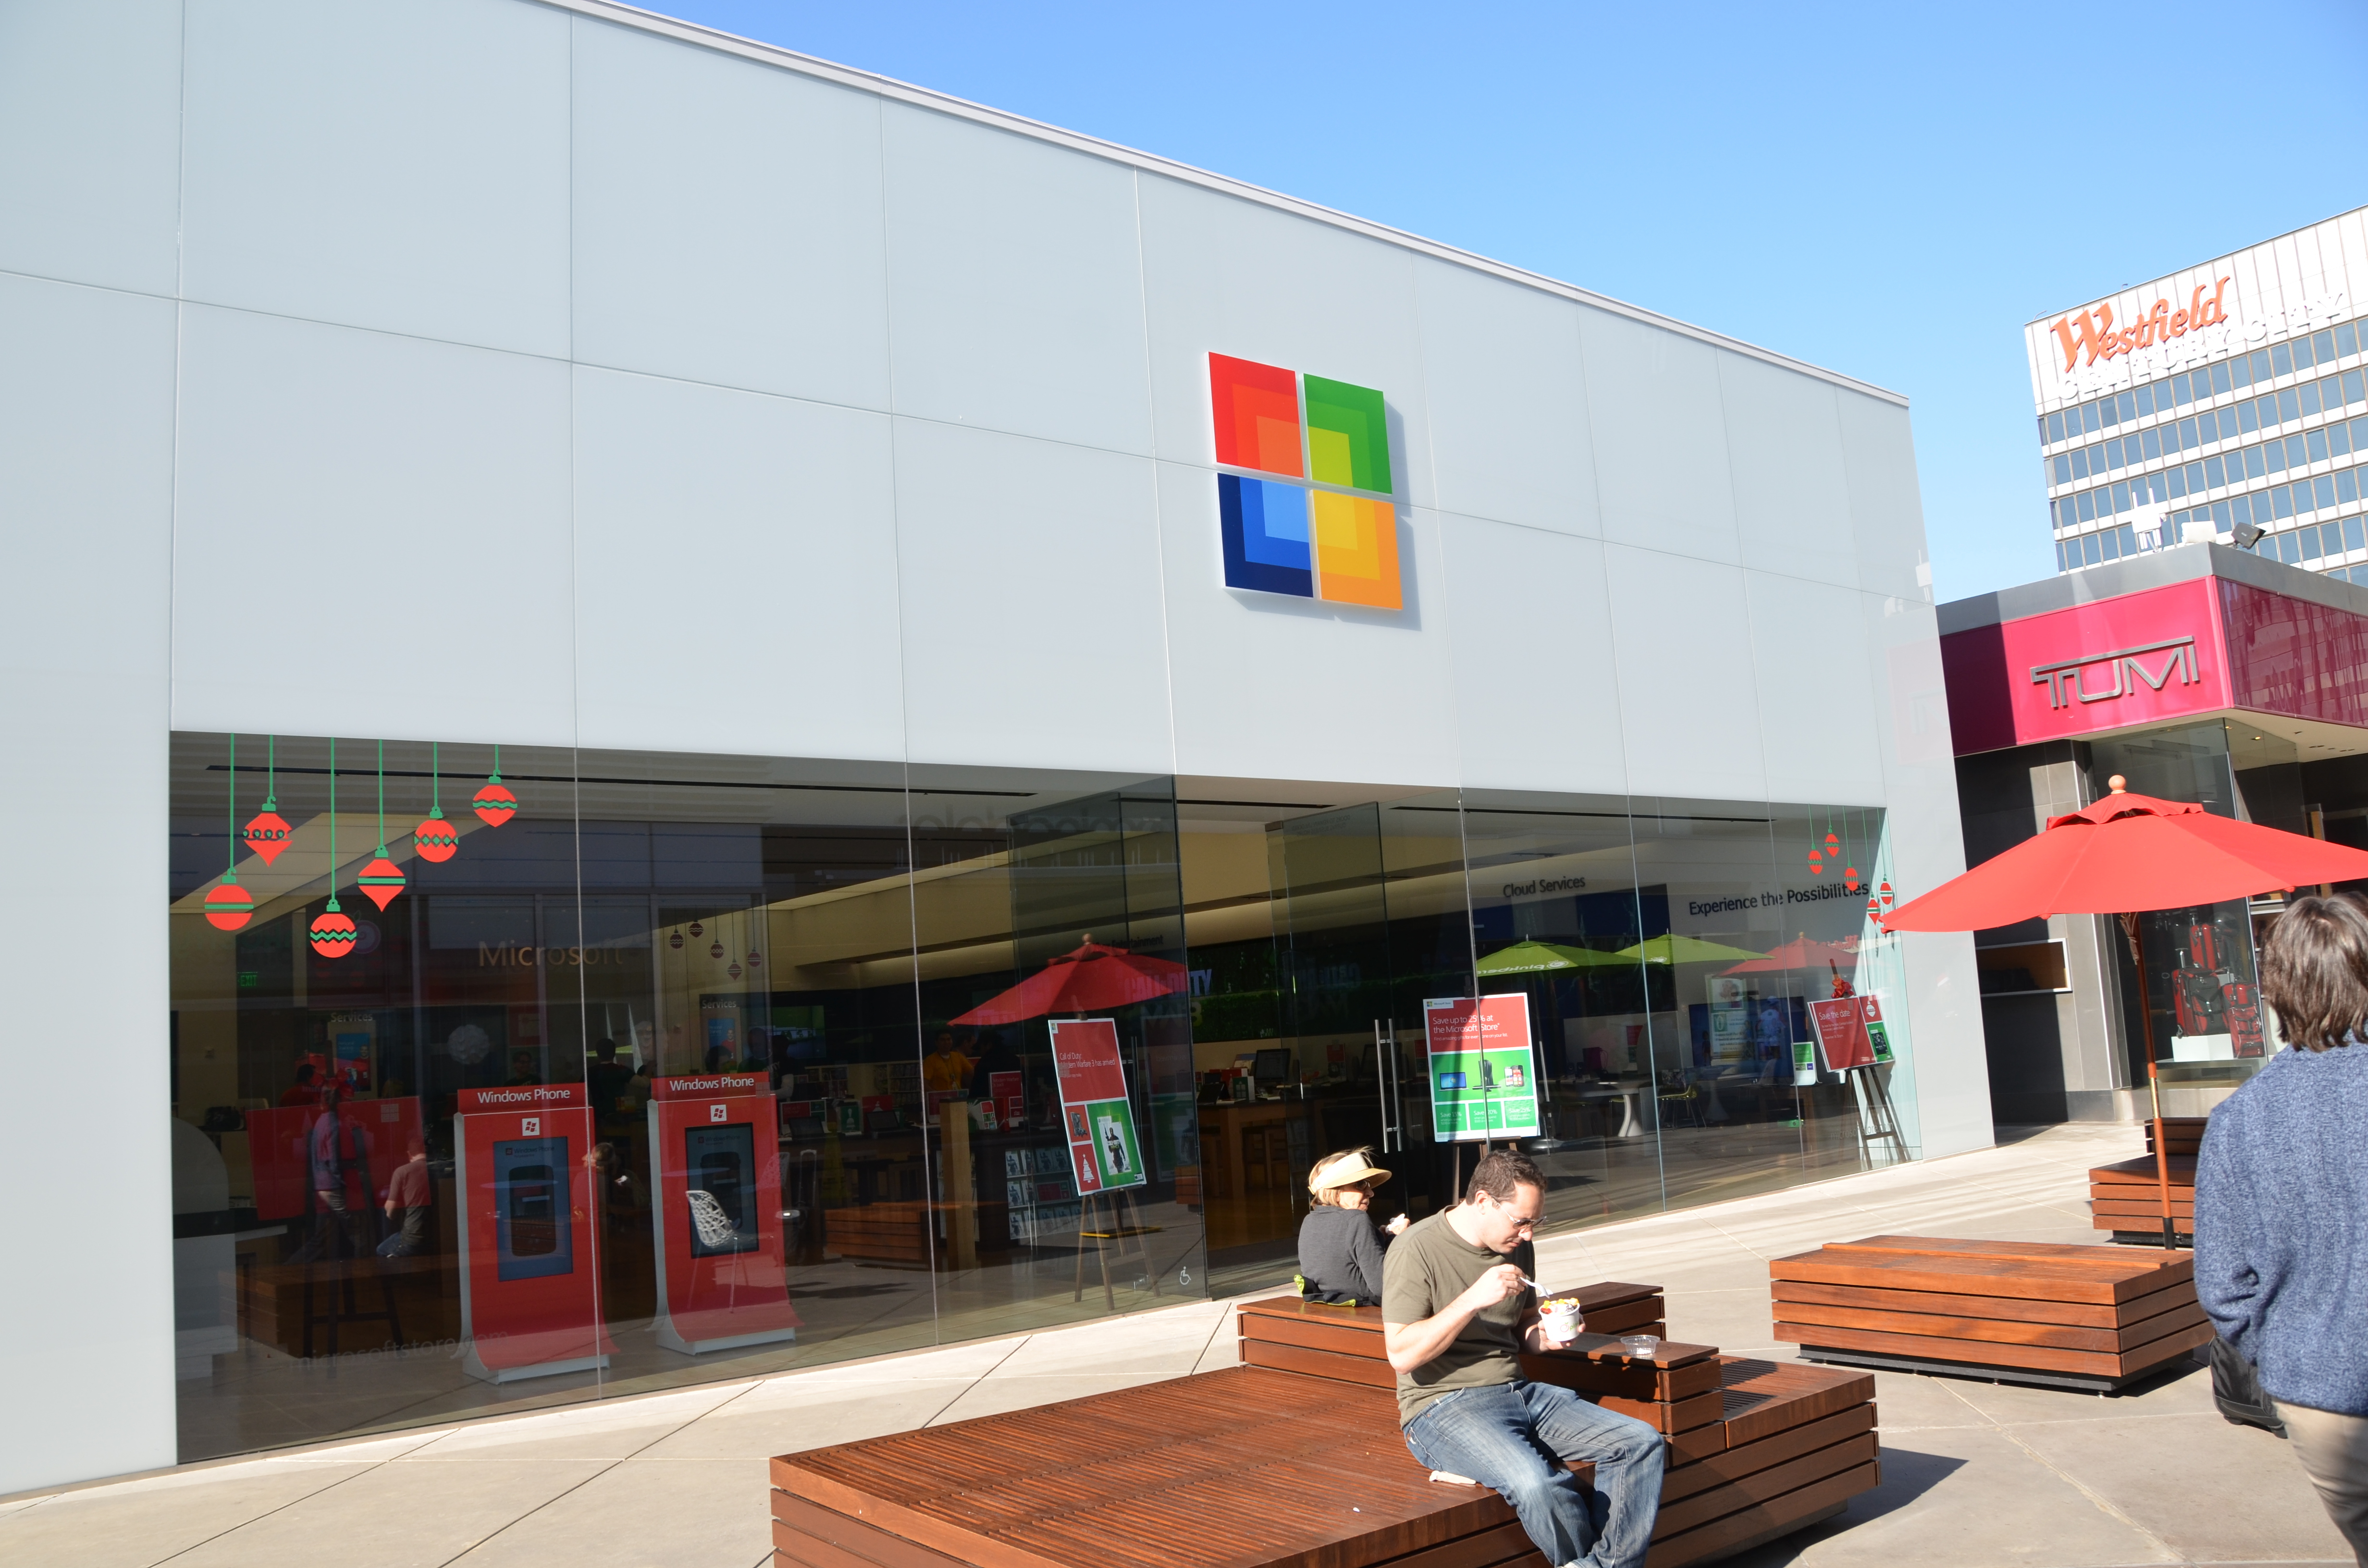 Microsoft, Sony and Apple wage retail fight in L.A.